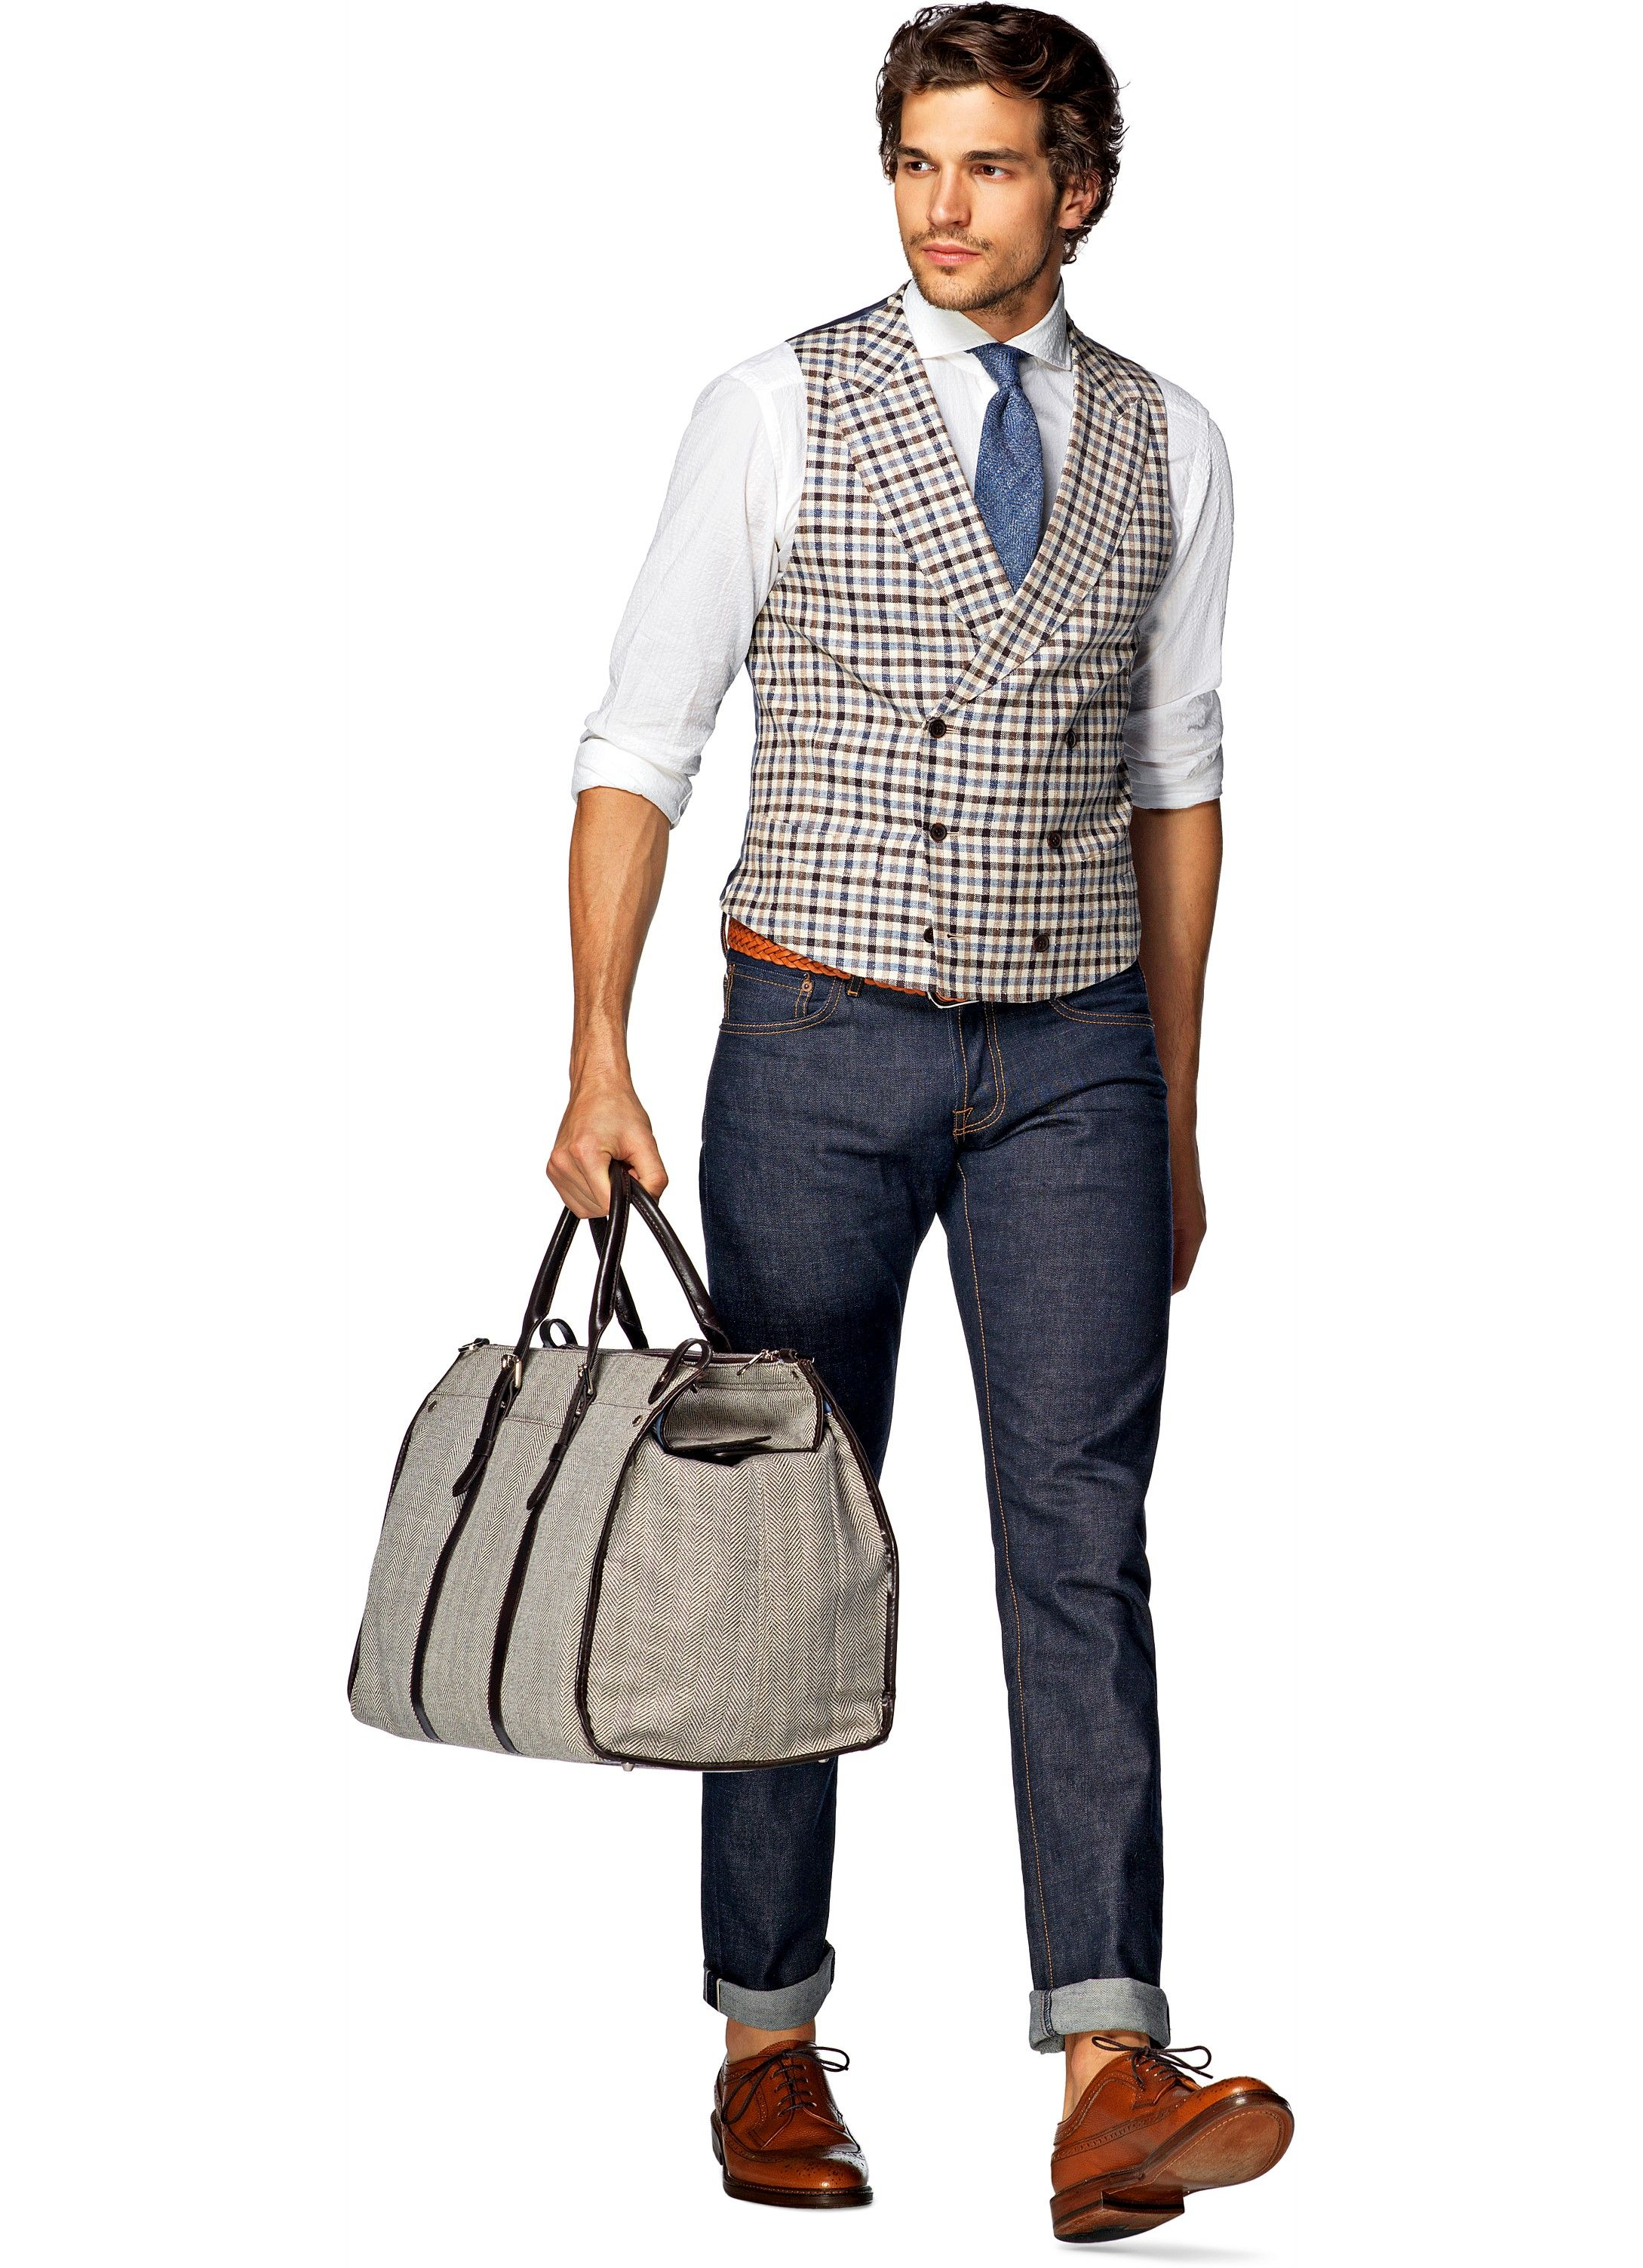 Fonkelnieuw Light Brown Waistcoat W150105i   Suitsupply Online Store   Things DH-81